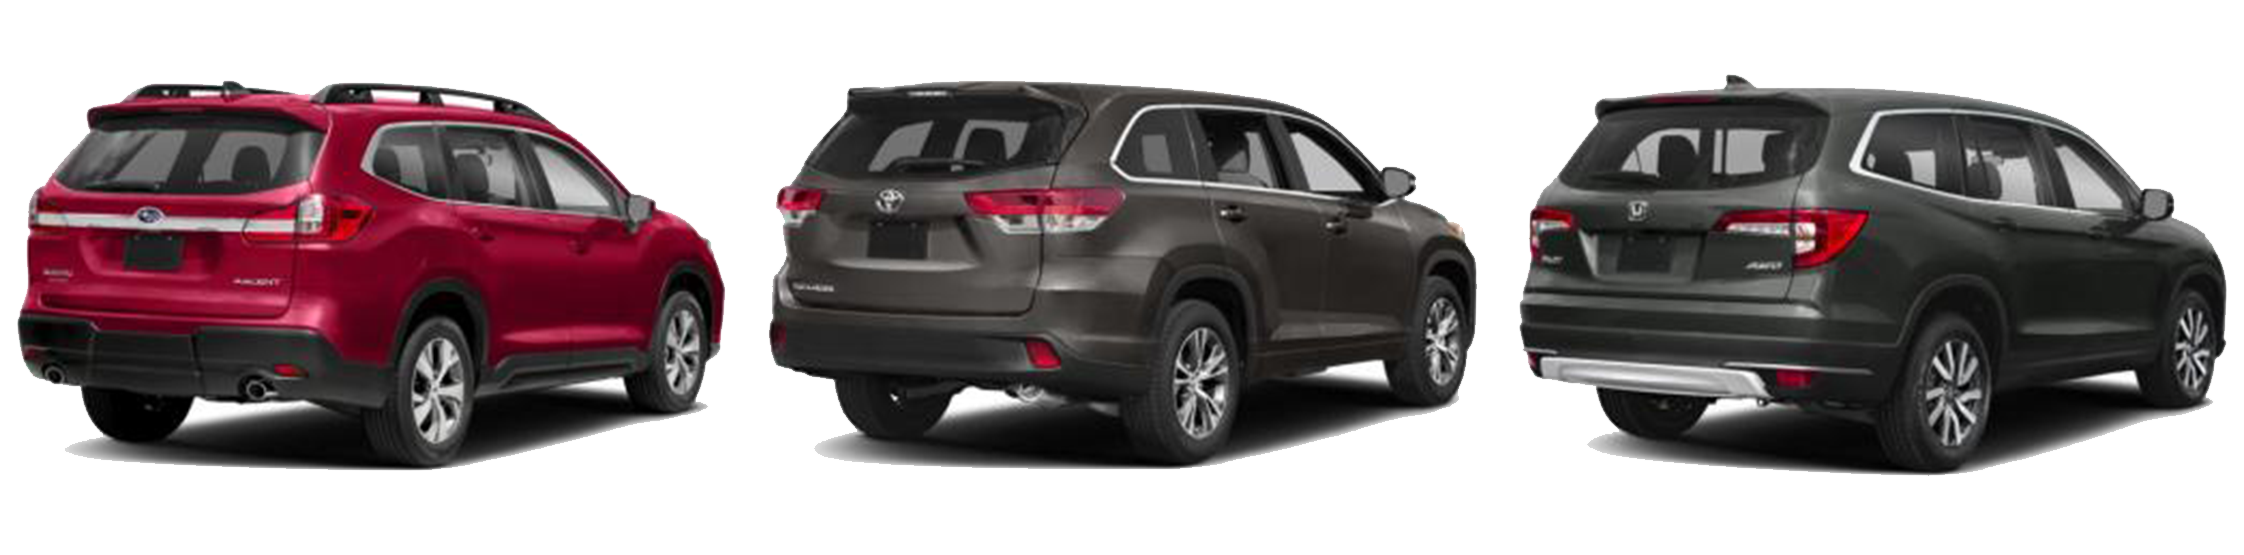 98 New 2019 Subaru Ascent Vs Honda Pilot Vs Toyota Highlander Performance and New Engine with 2019 Subaru Ascent Vs Honda Pilot Vs Toyota Highlander